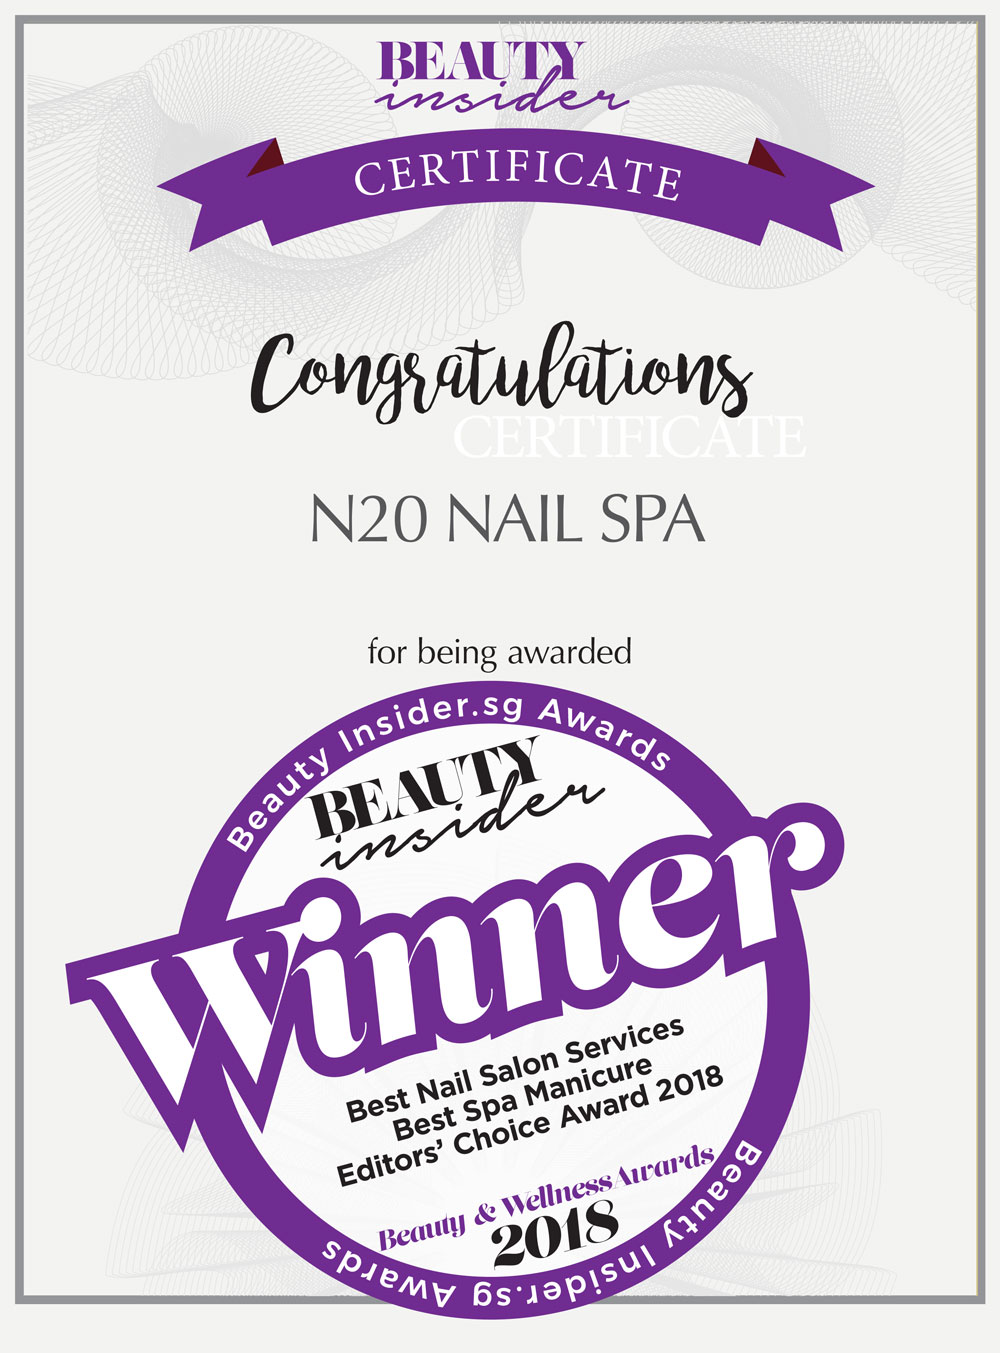 2018 Best Nail Salon Services & Spa Manicure Award Certificate